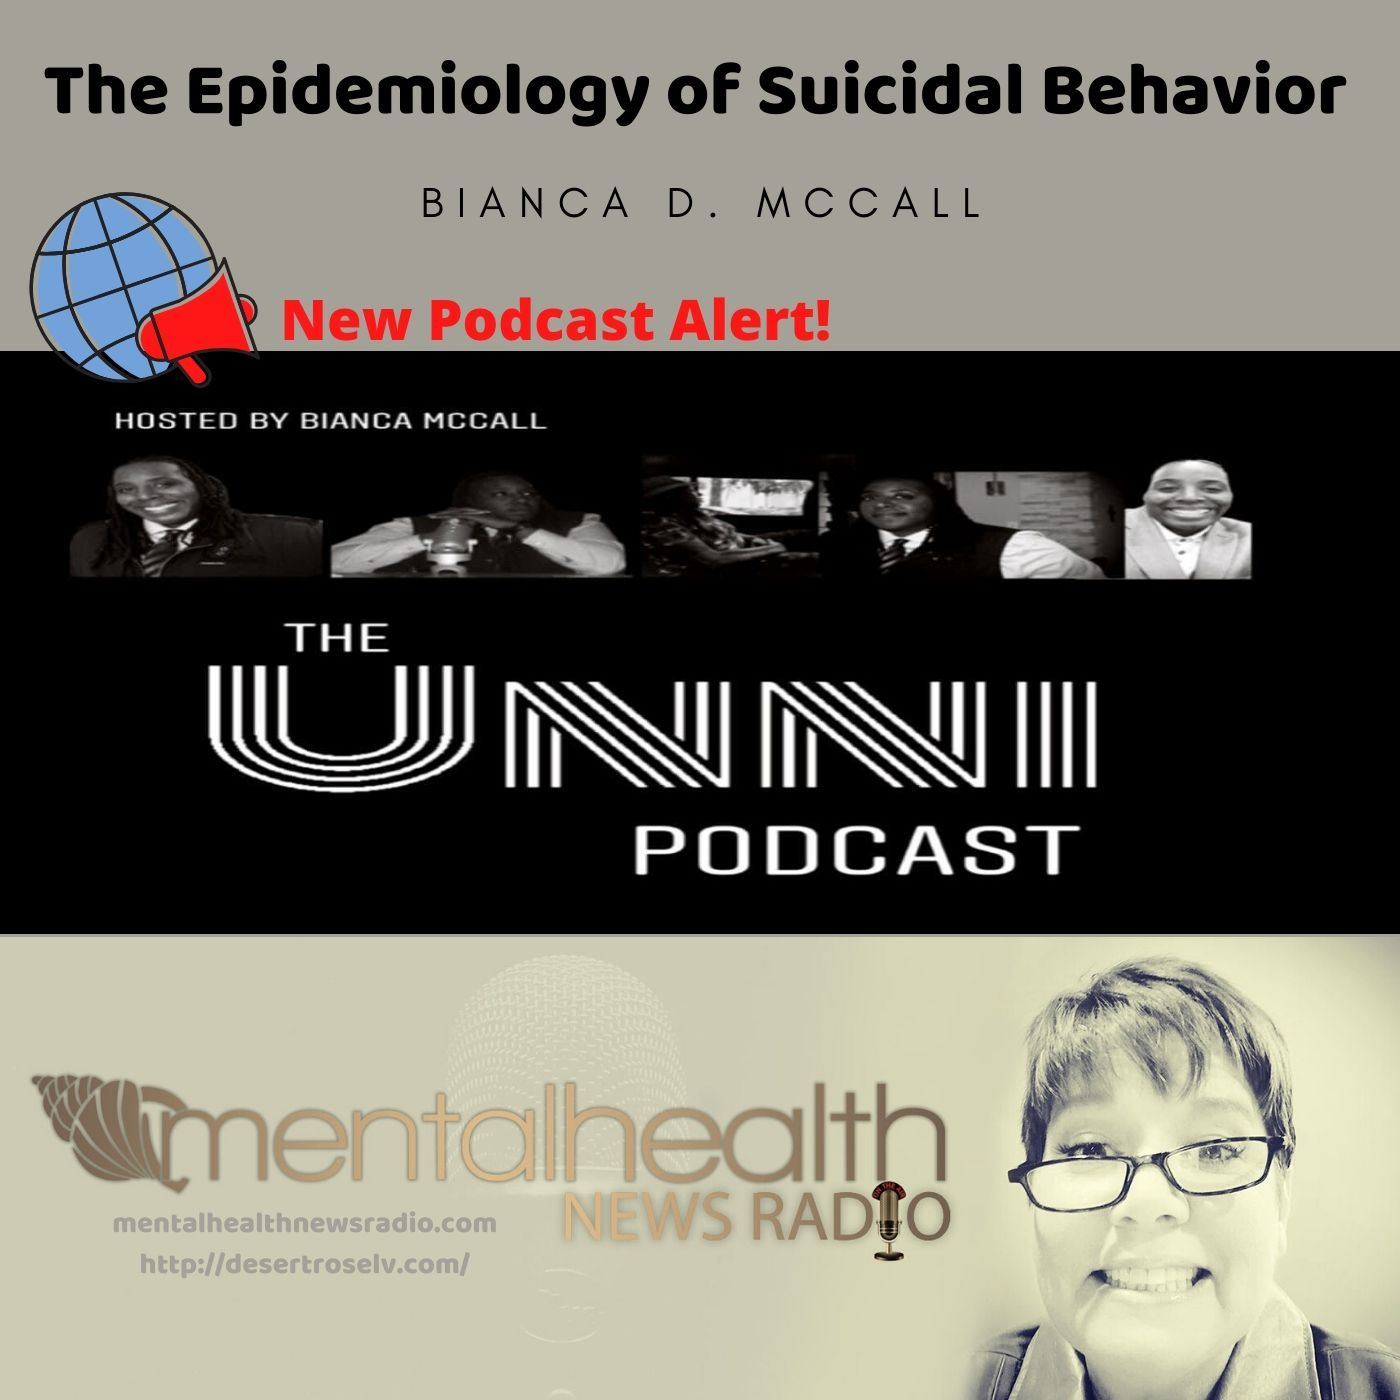 Mental Health News Radio - The Epidemiology of Suicidal Behavior with Bianca D. McCall